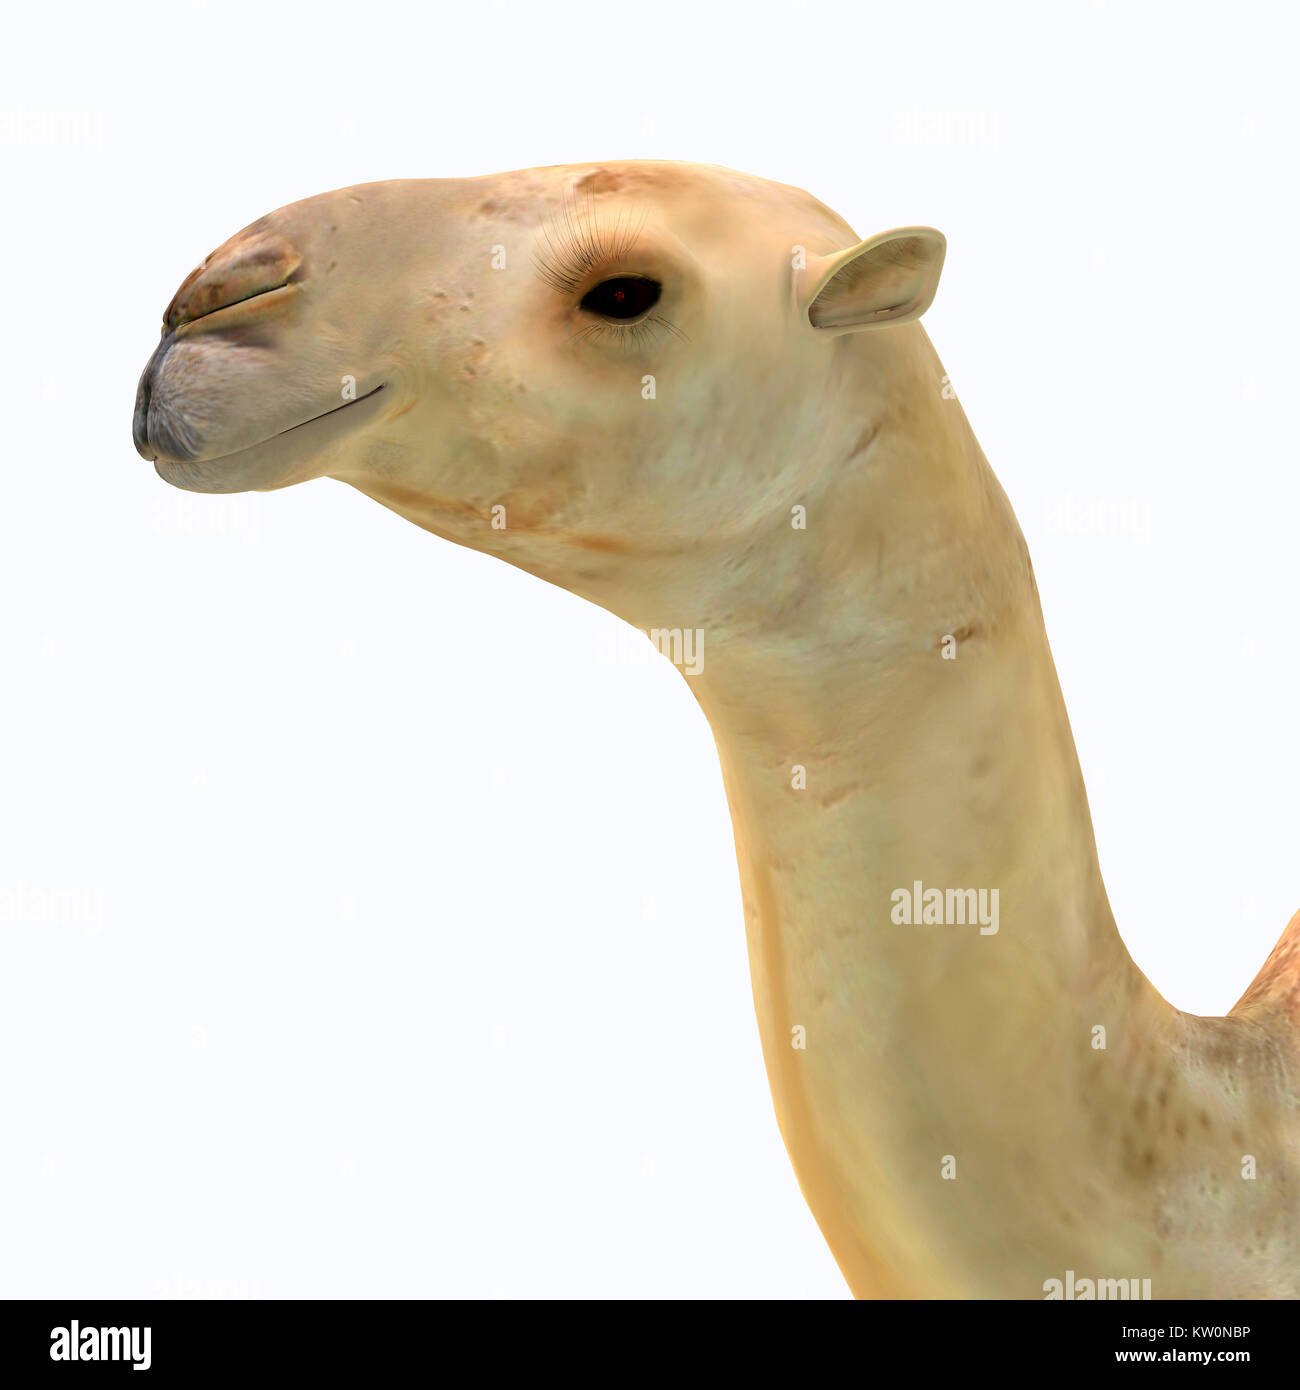 Camelops hesternus Head - Camelops was a camel-type herbivorous animal that lived in North America during the Pleistocene - Stock Image